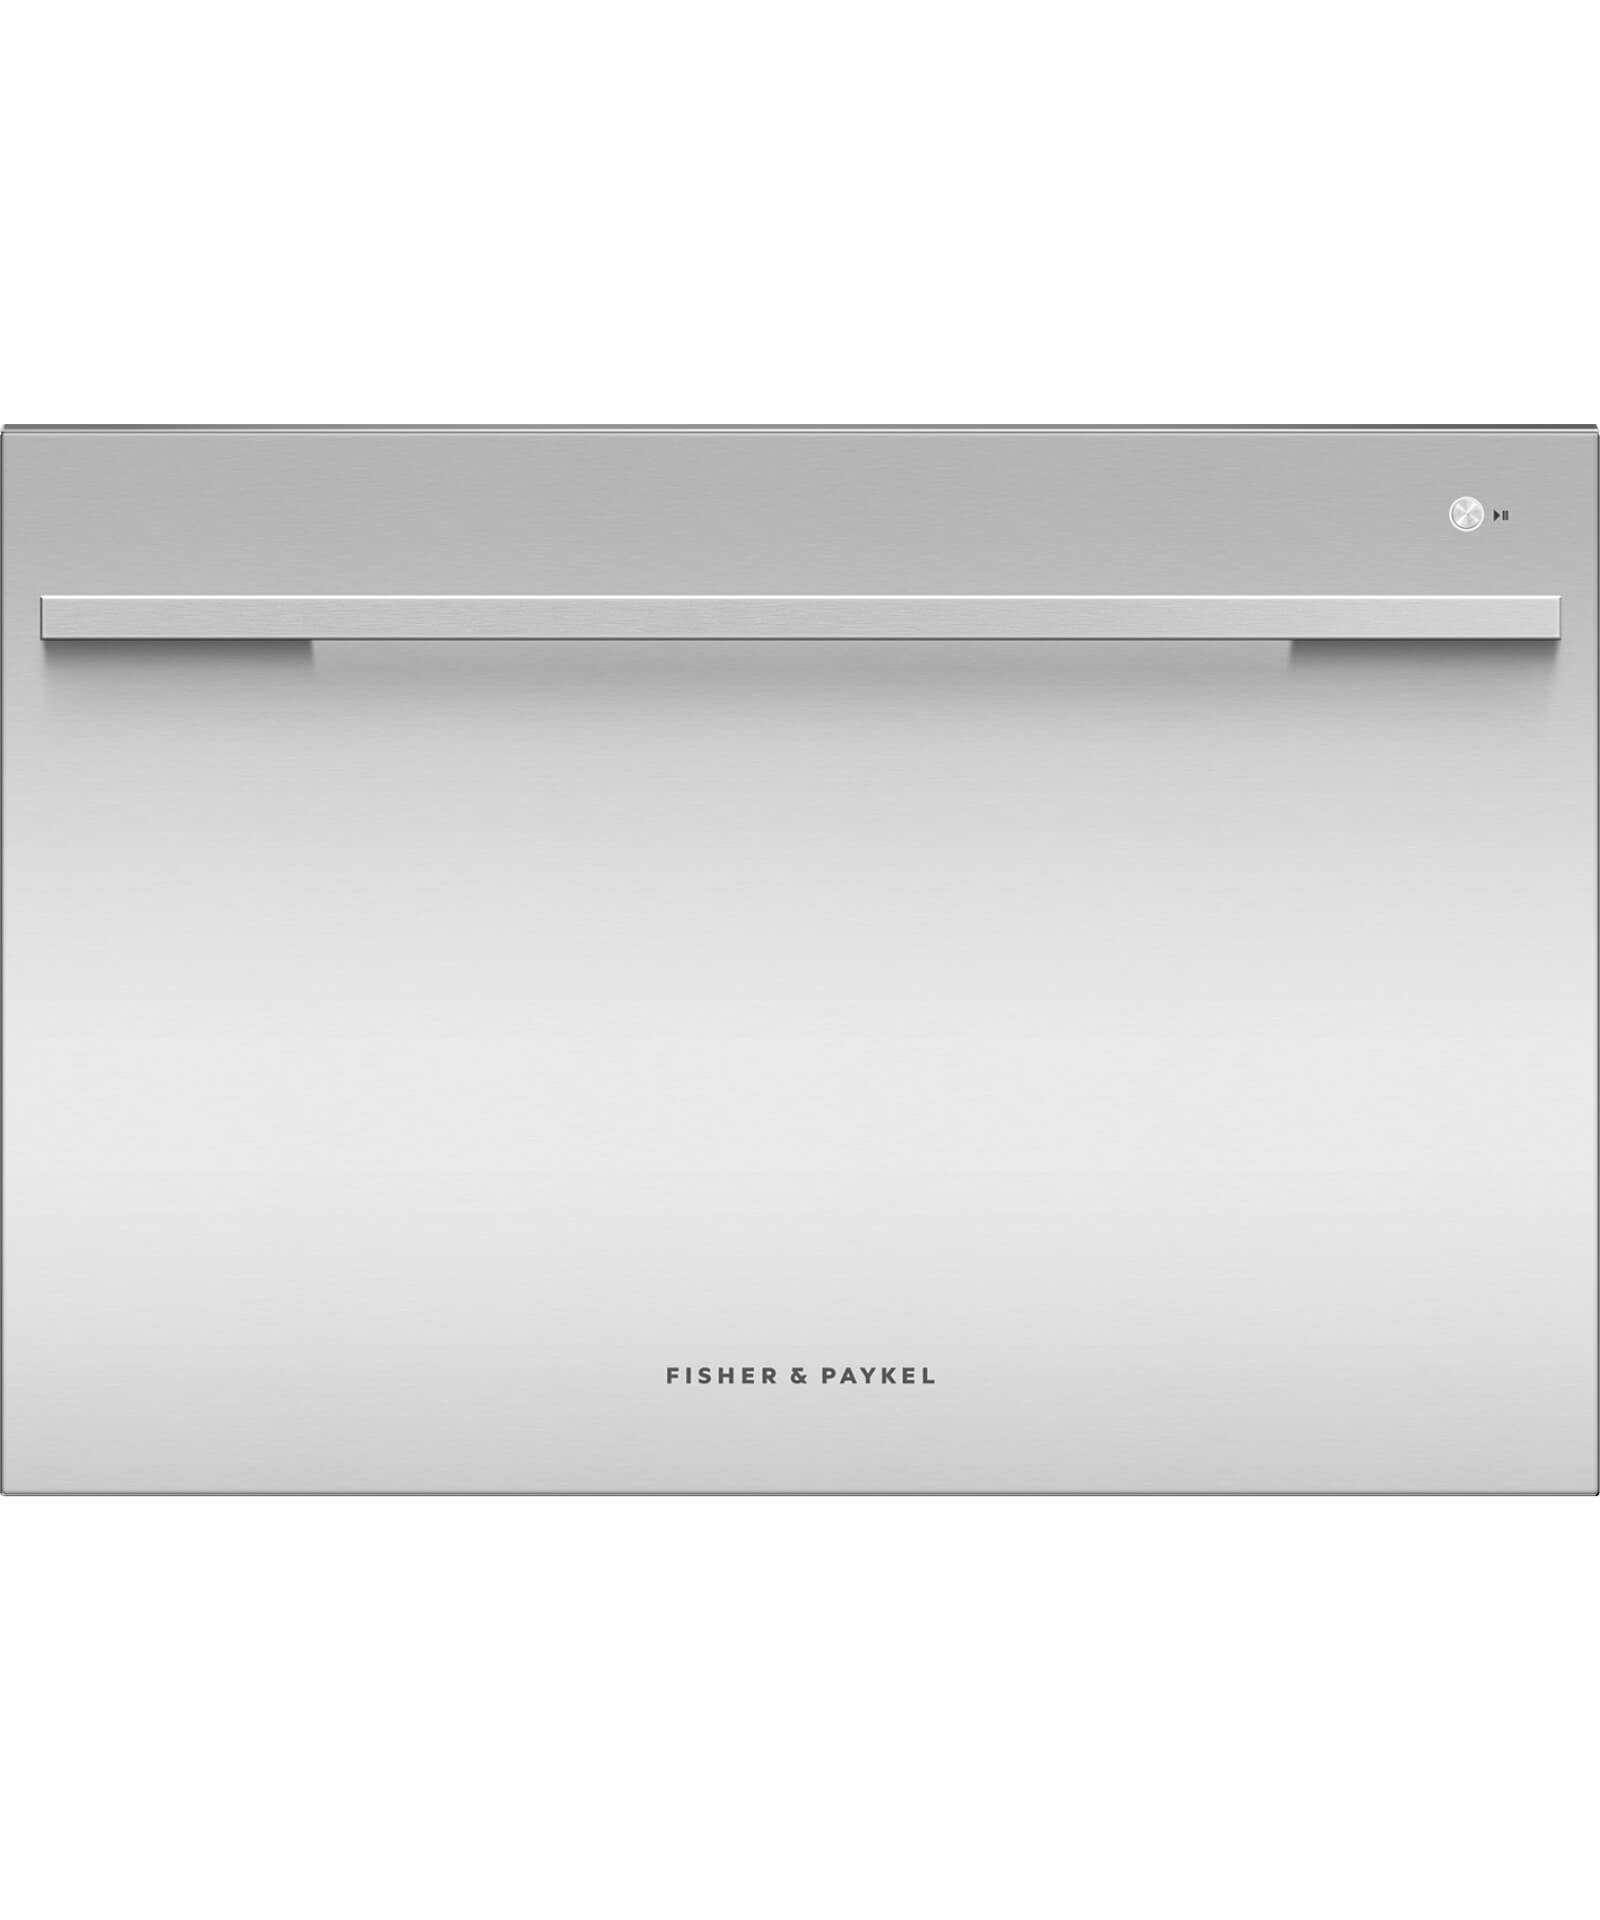 Fisher & Paykel DD60SDFX9 Dishwasher